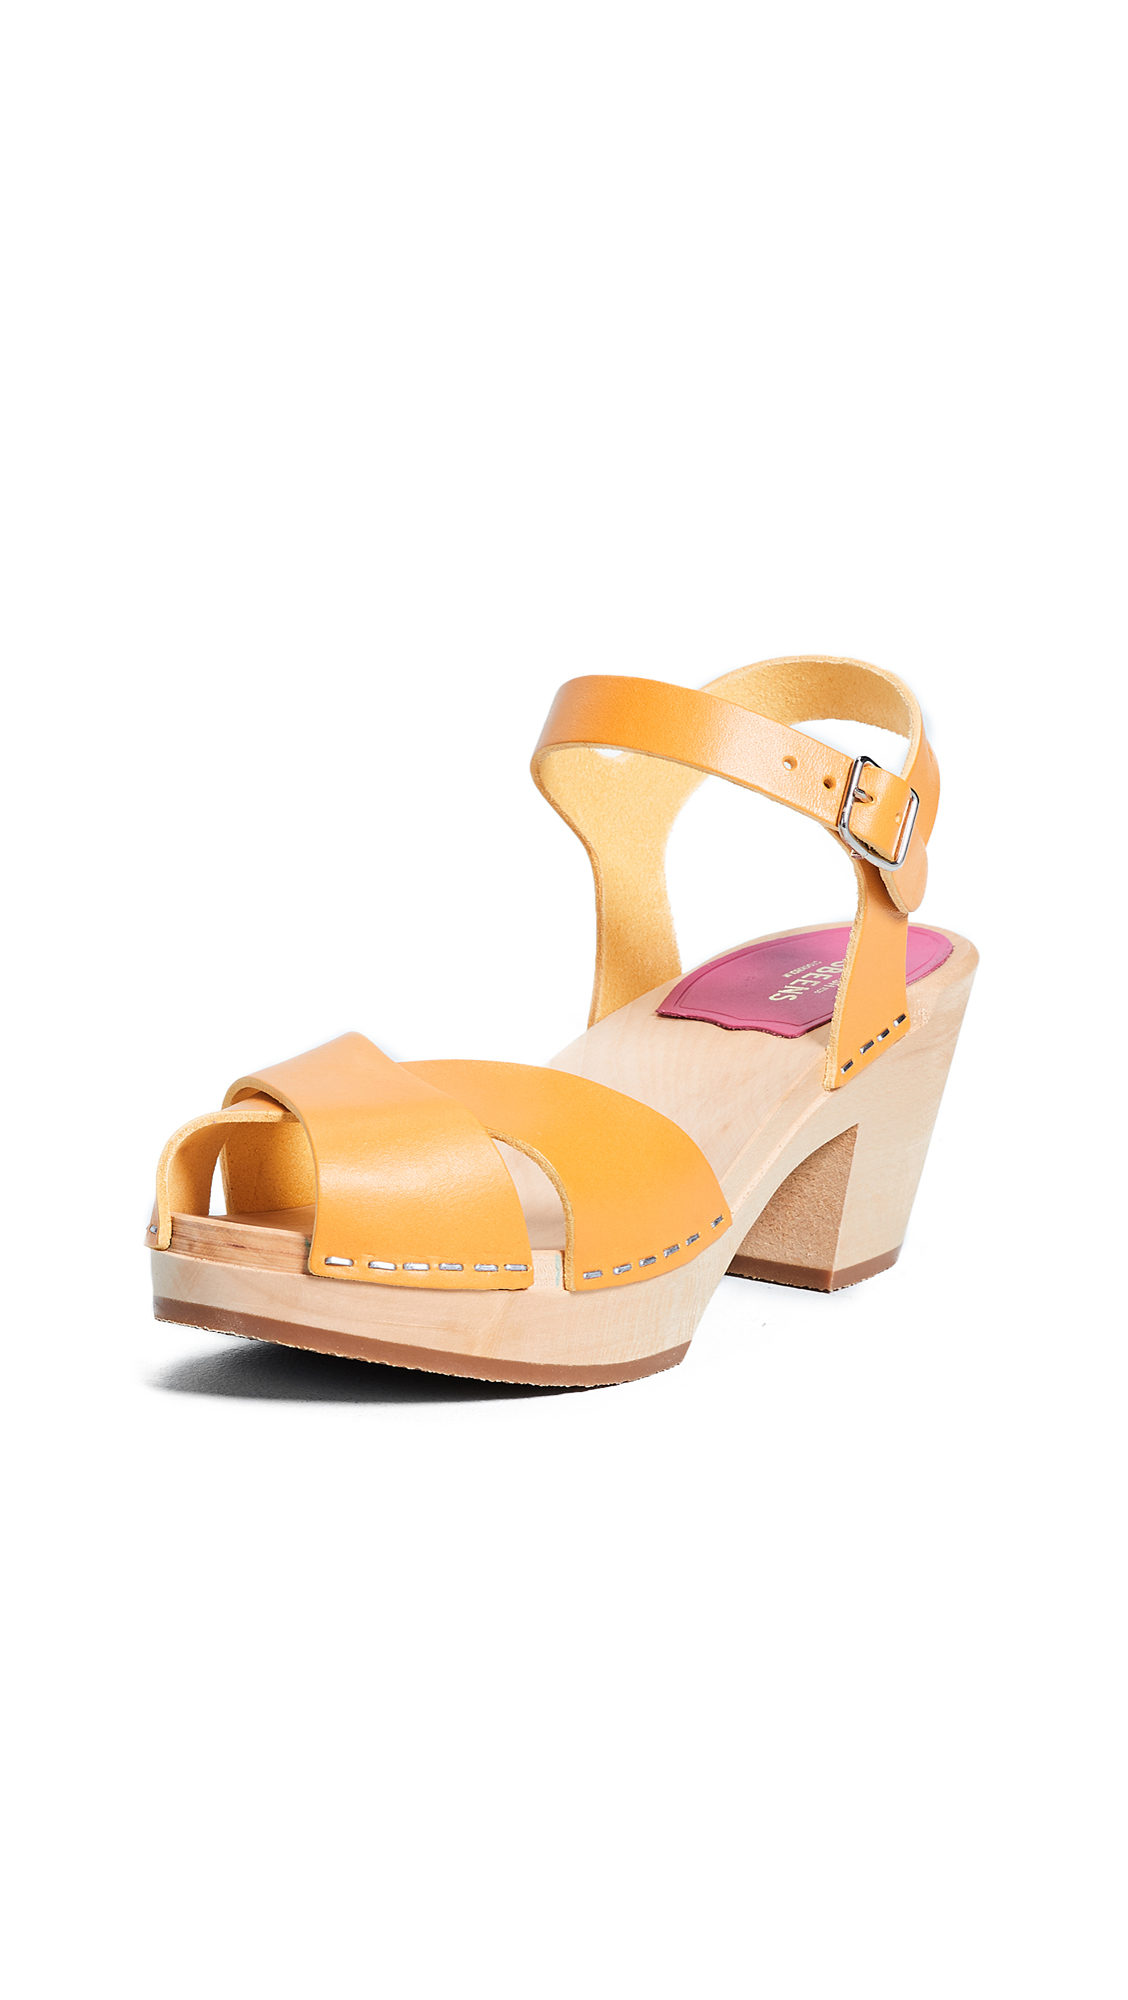 Swedish Hasbeens Mirja Sandals - Warm Yellow